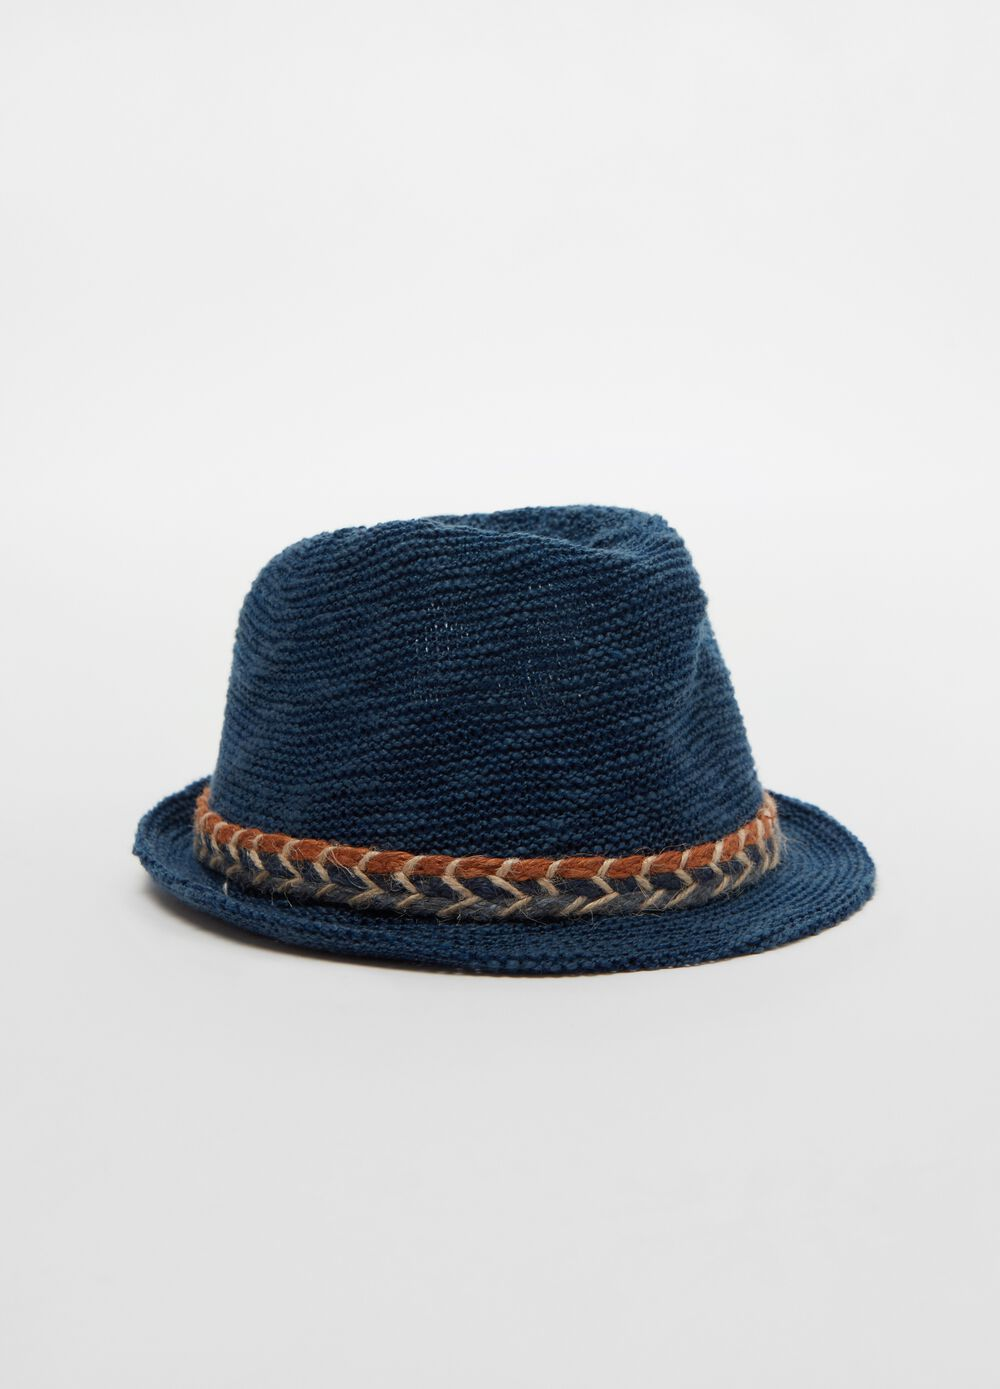 Straw hat with cord insert